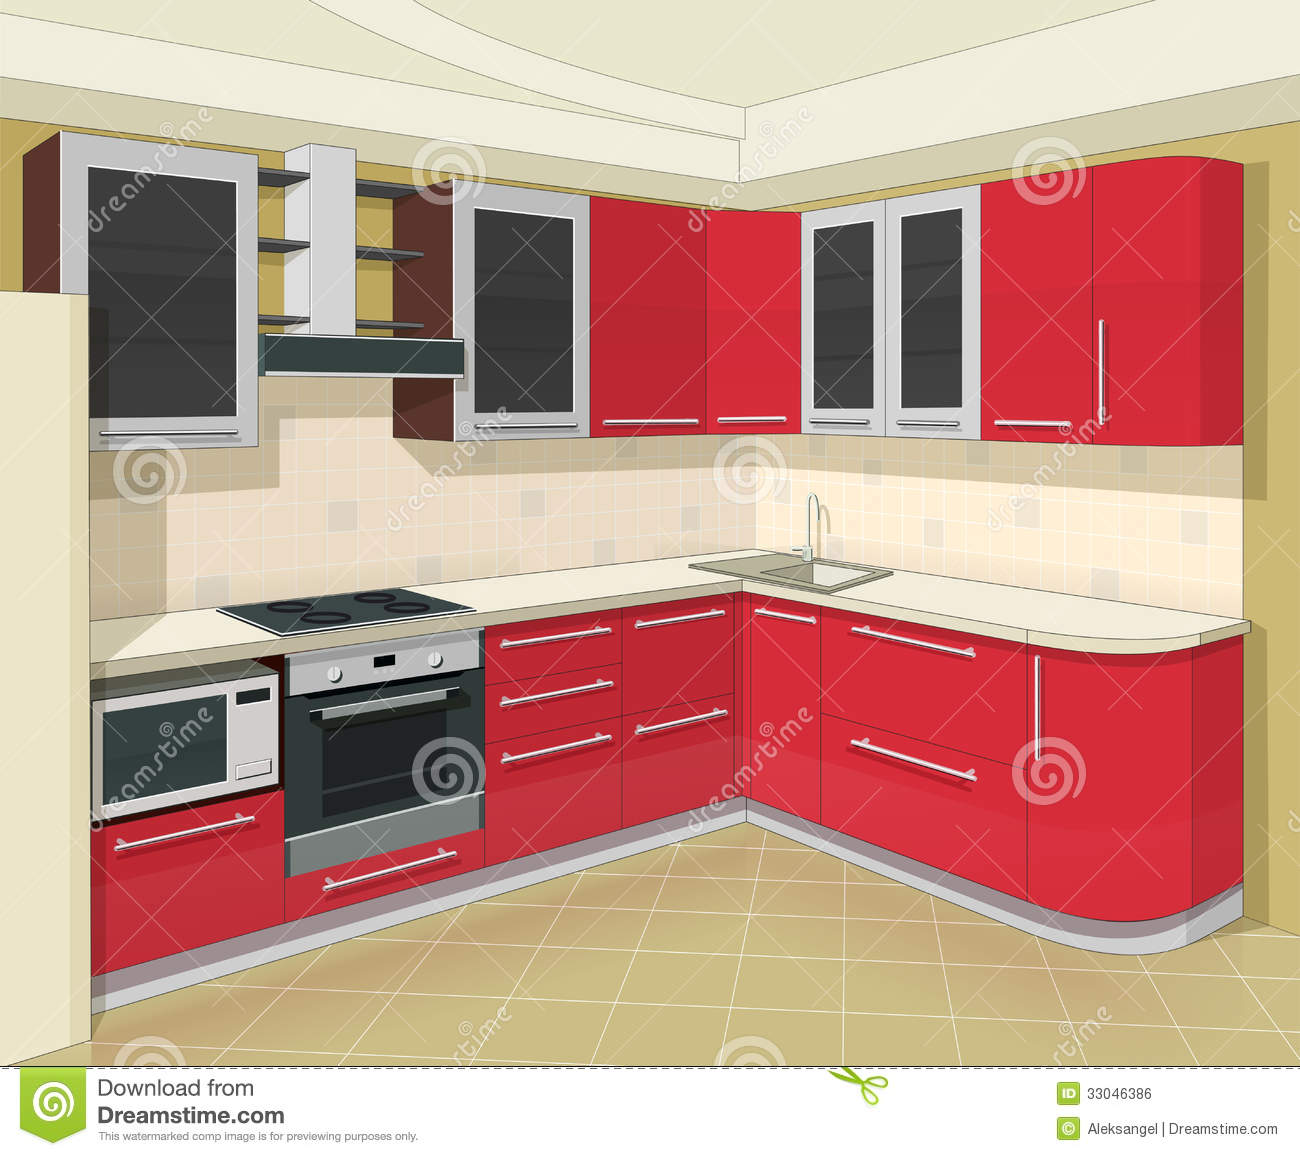 Kitchen Interior With Furniture Stock Vector Illustration Of